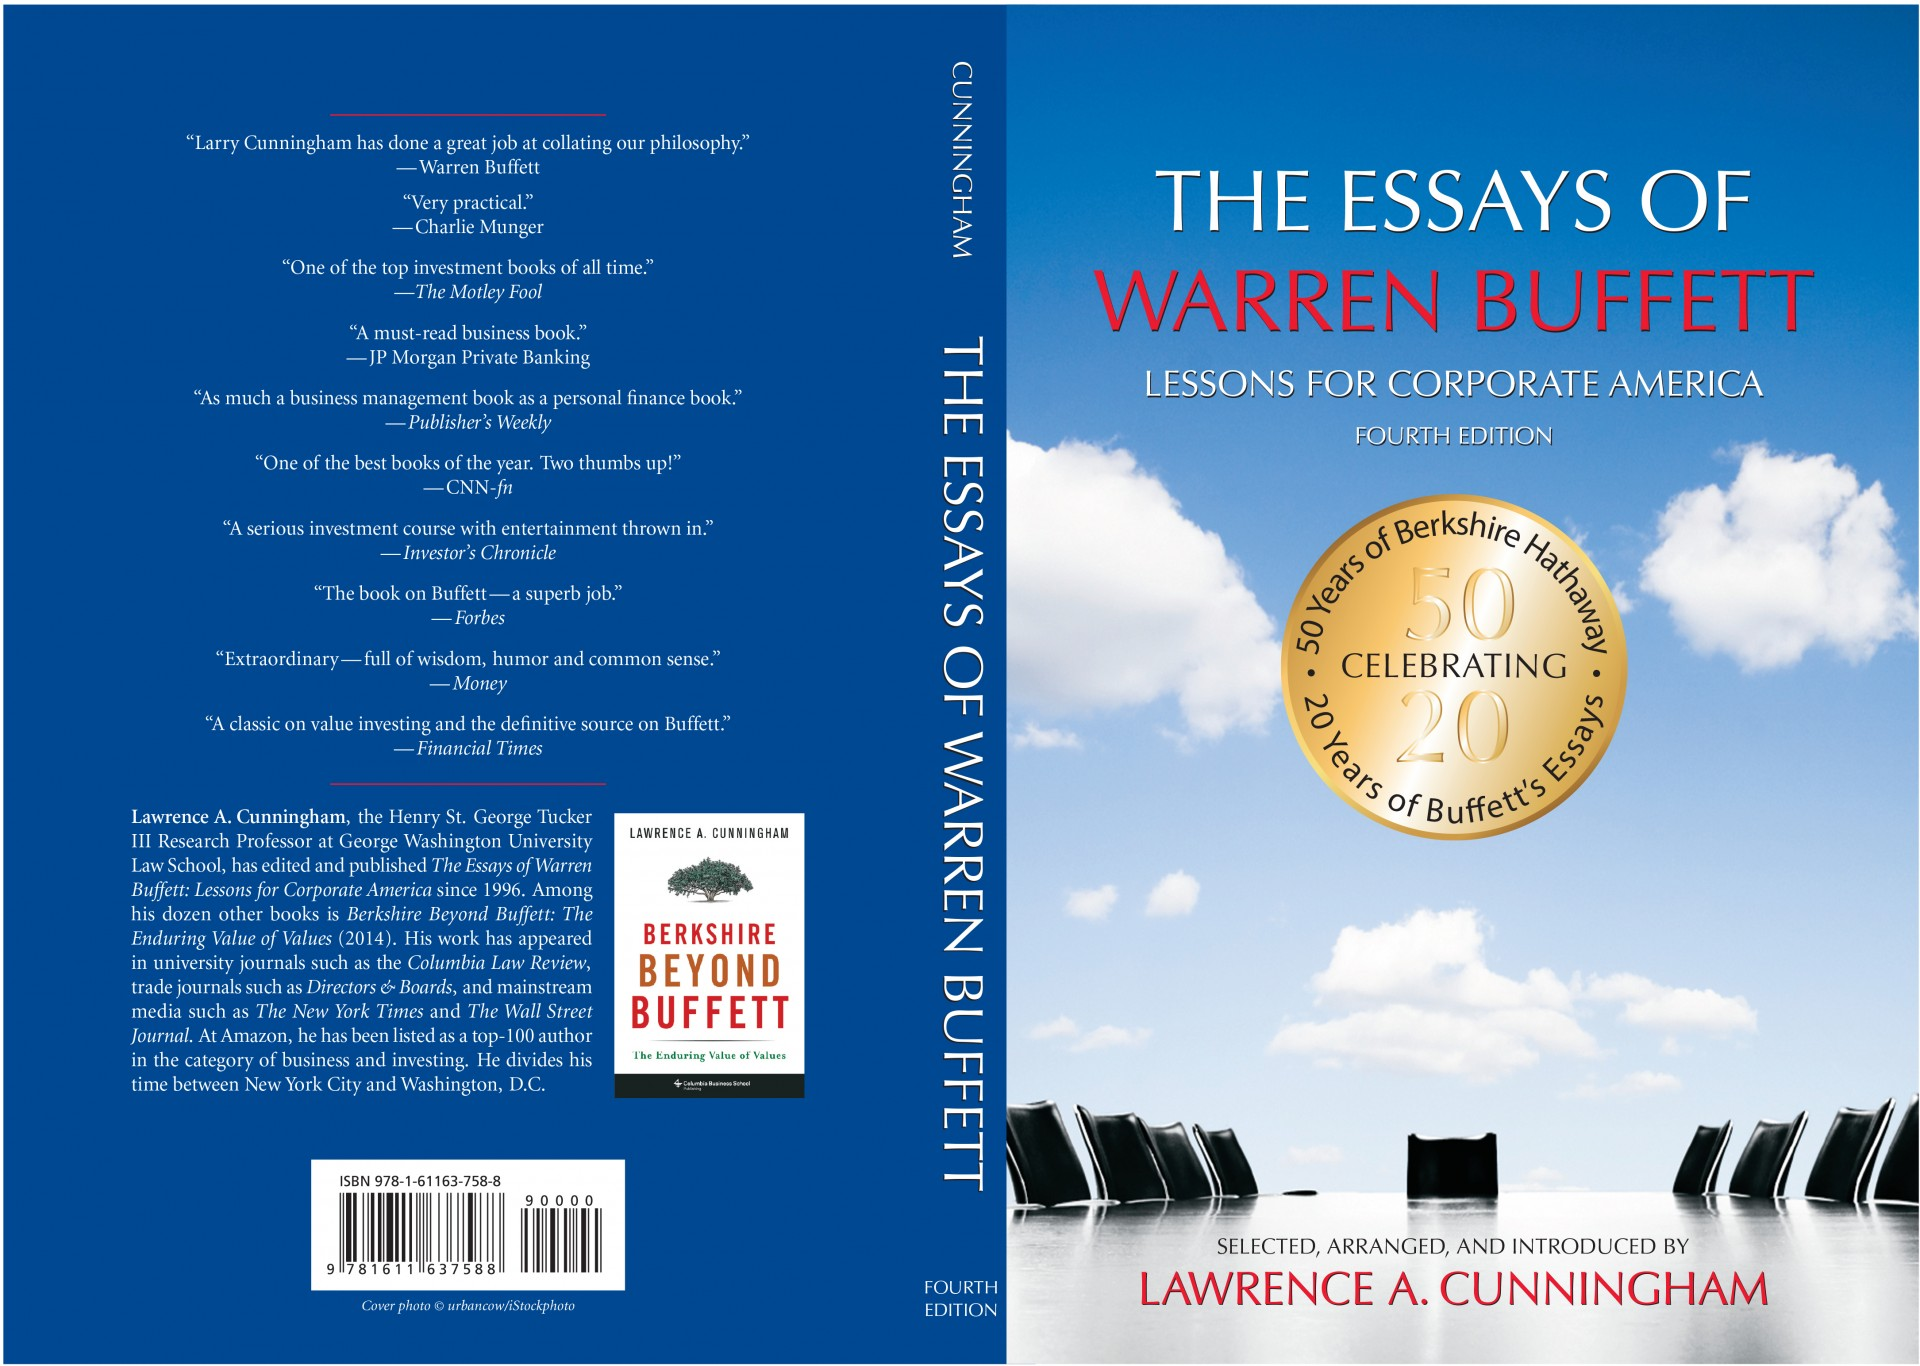 002 Essays Of Warren Buffett The Essay Top 4th Edition Pdf Free 1920